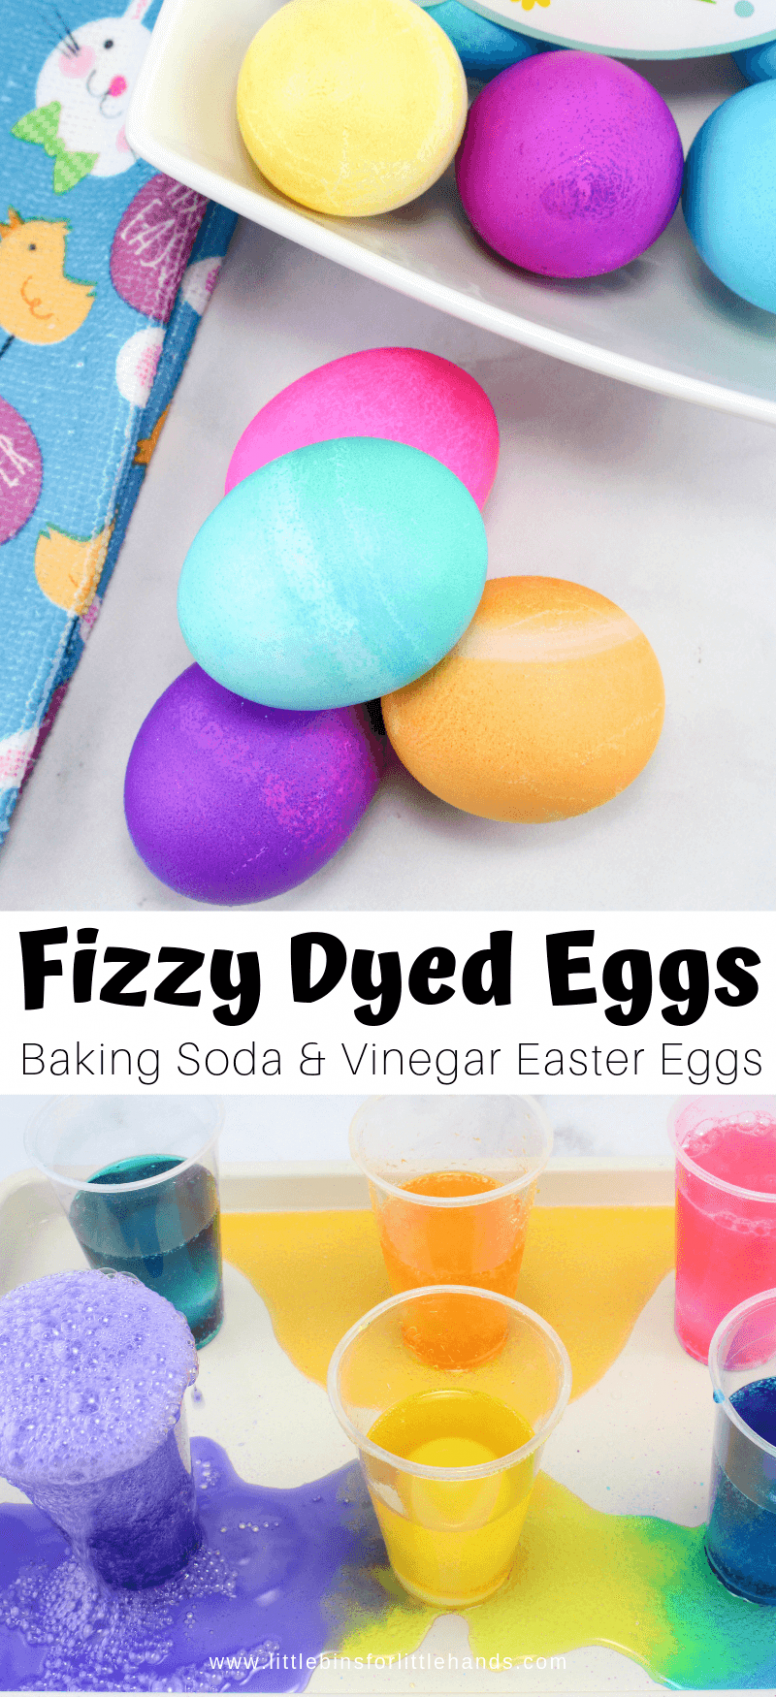 Fizzy Dyeing Easter Eggs For Kids | Little Bins for Little Hands